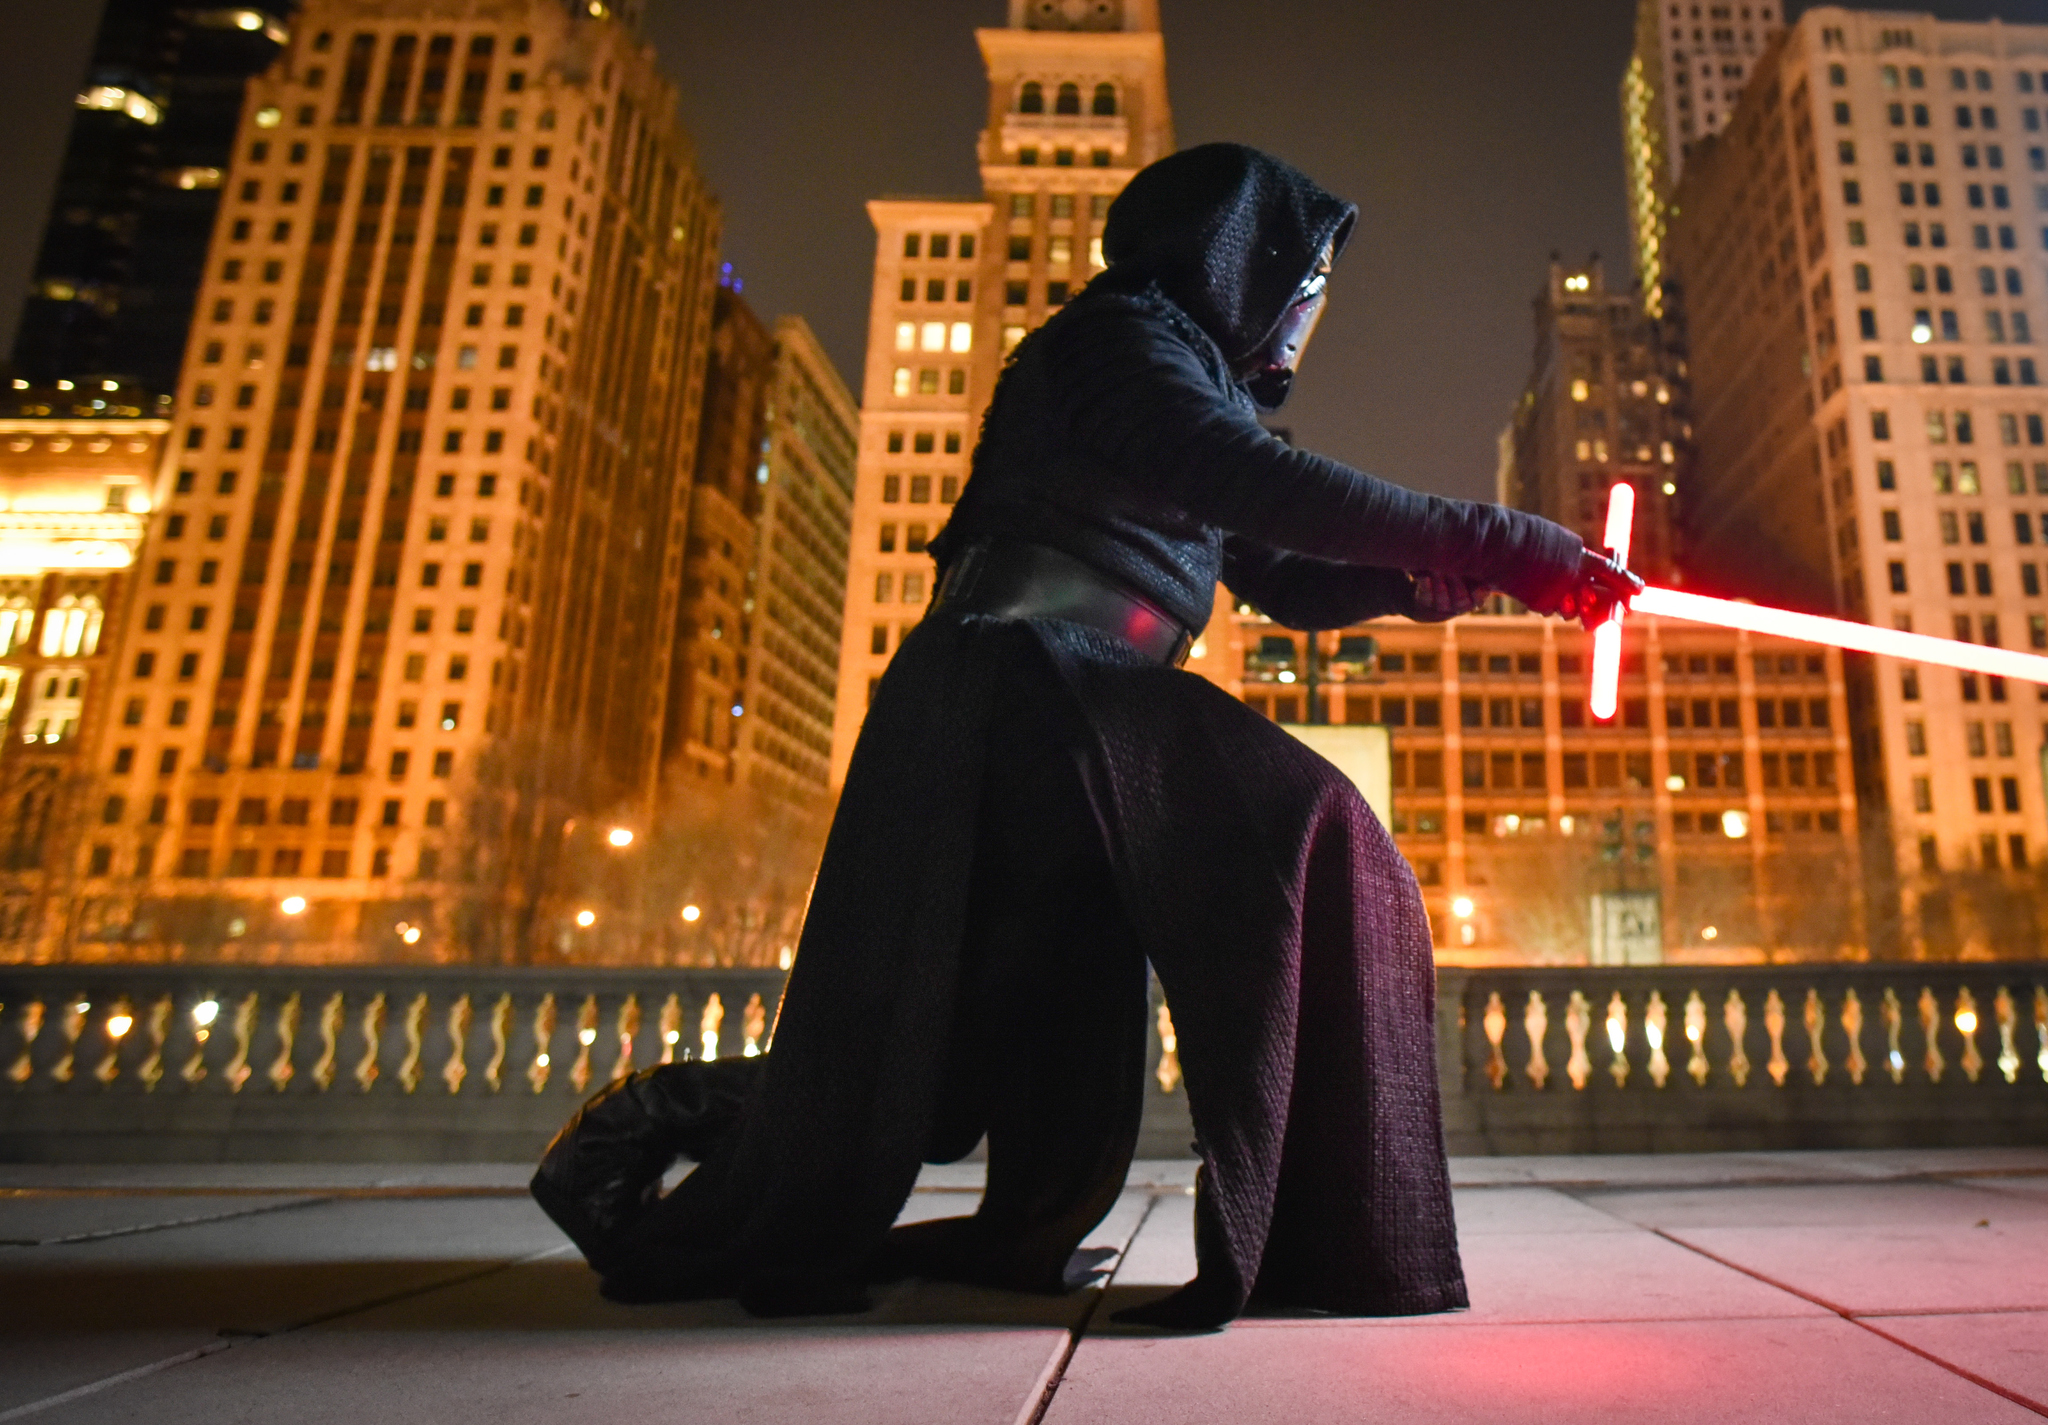 2019.04.14 - Star Wars Celebration Chicago 288889.JPG